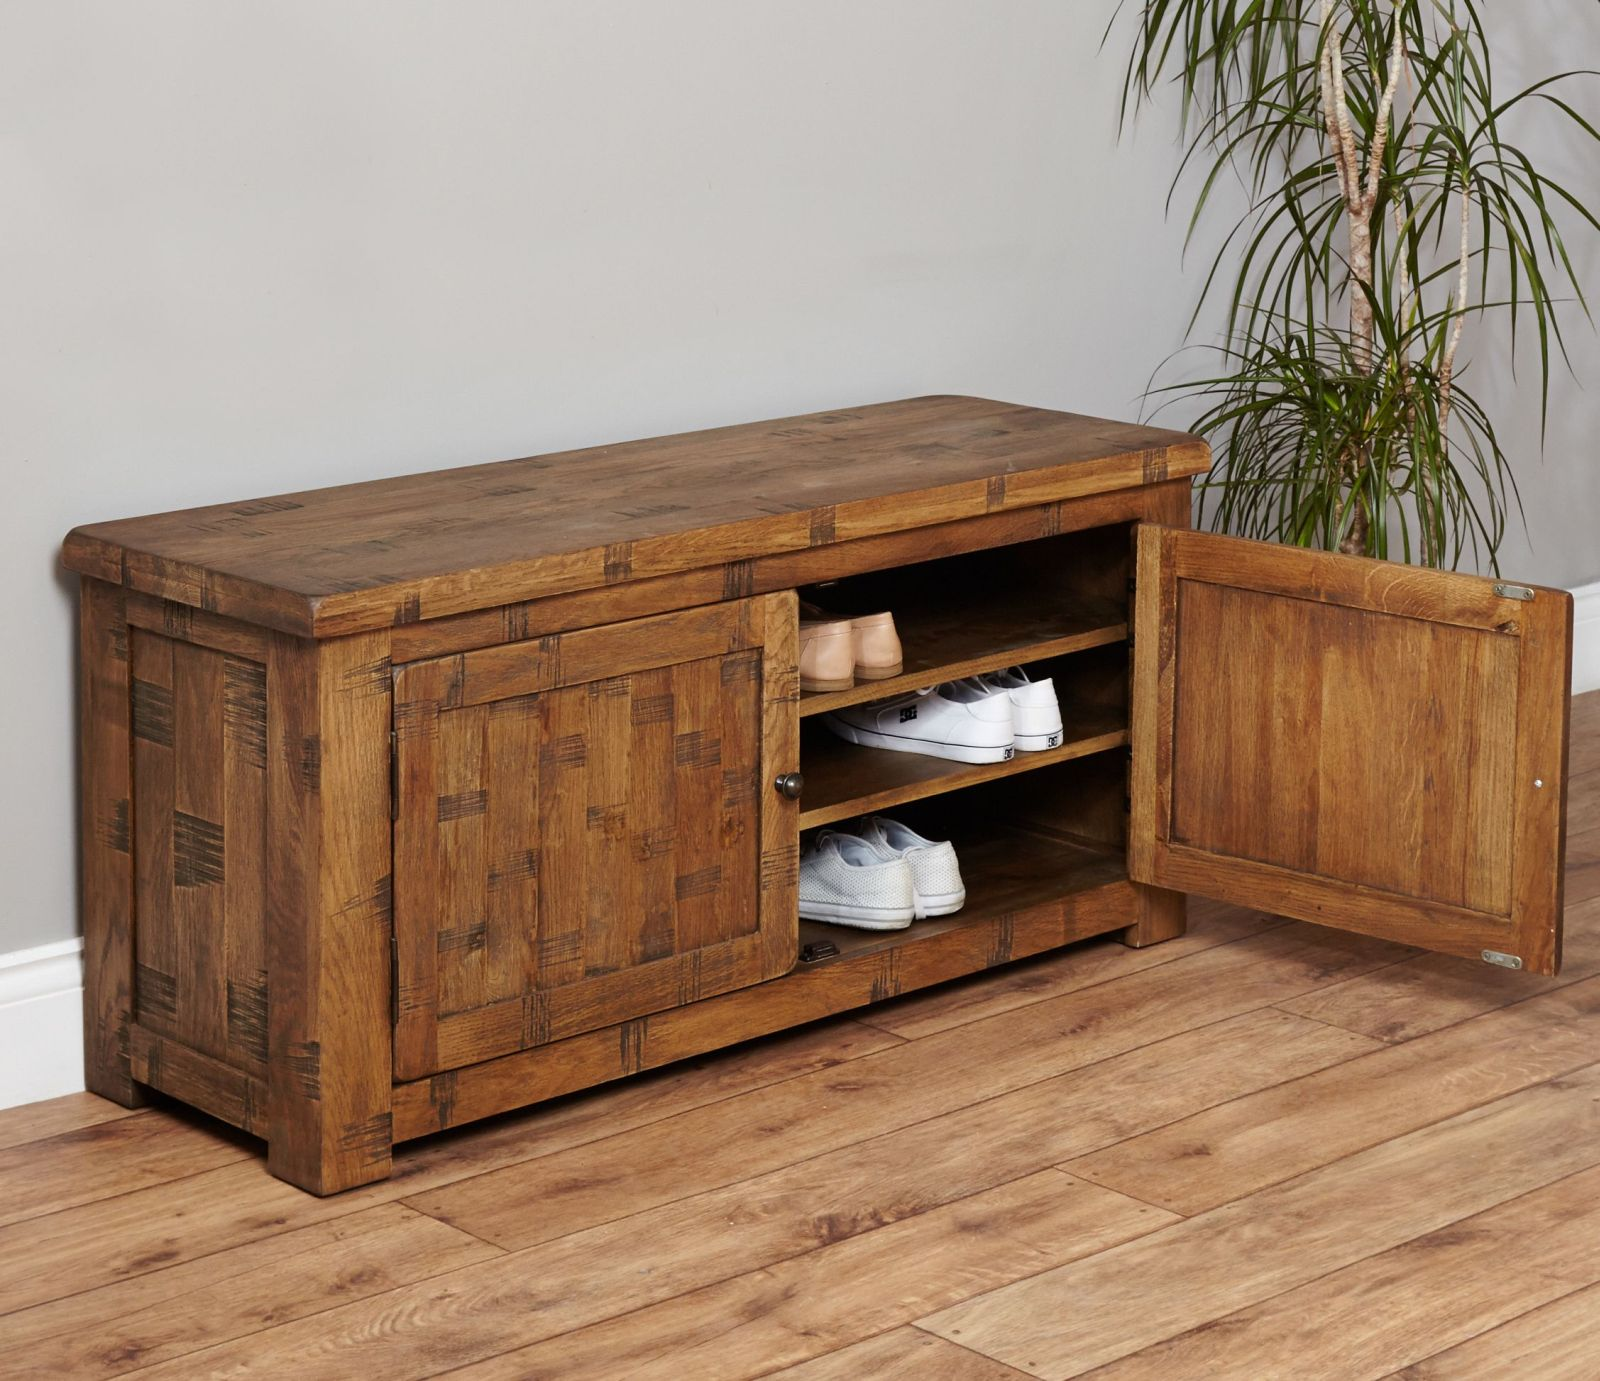 Mobel Solid Oak Furniture Shoe Storage Hallway Bench: Heyford Rough Sawn Solid Oak Furniture Shoe Storage